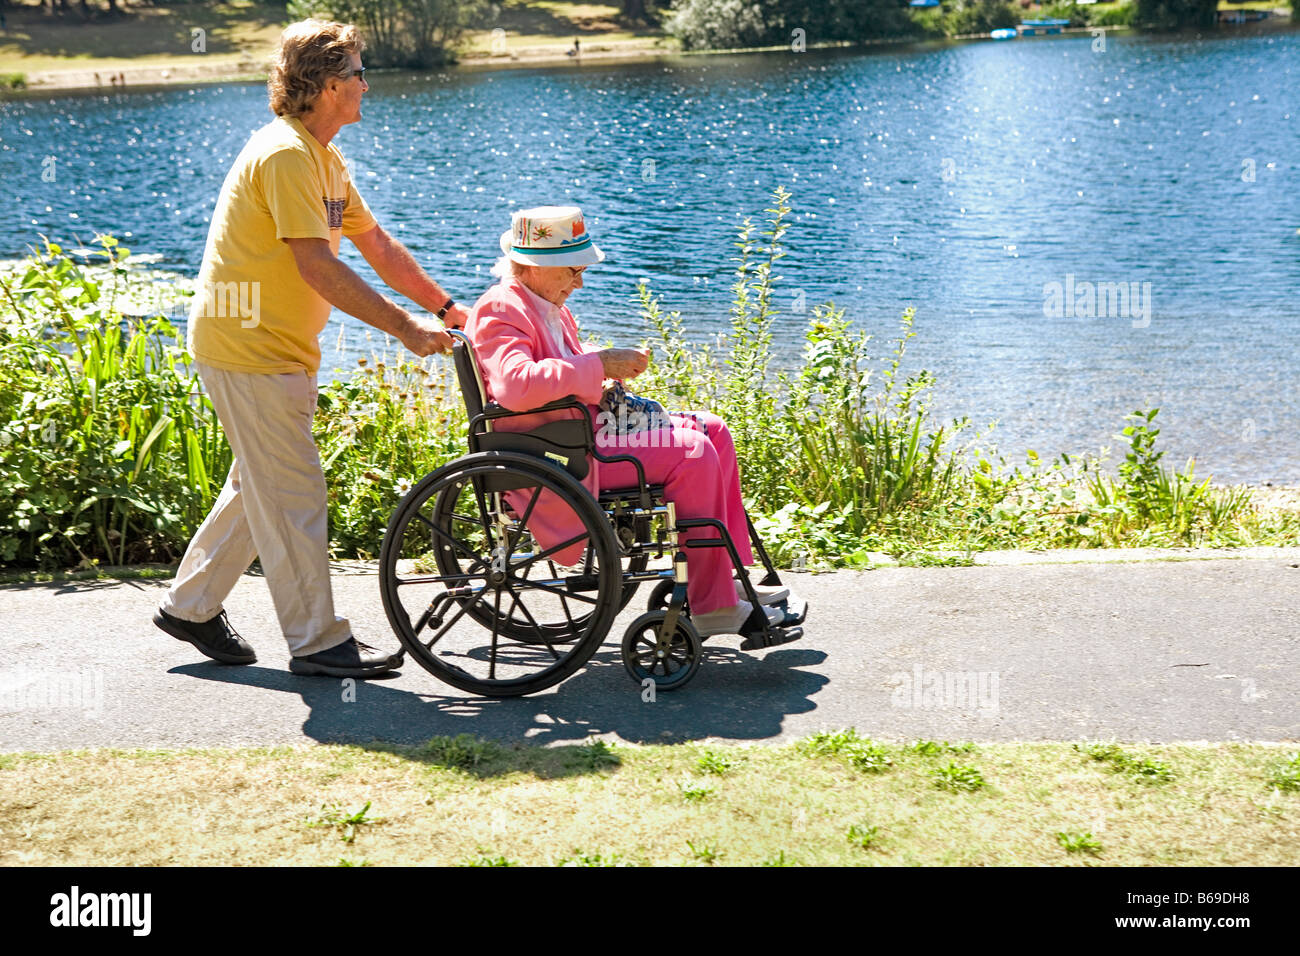 Man pushing his mother sitting in a wheelchair - Stock Image